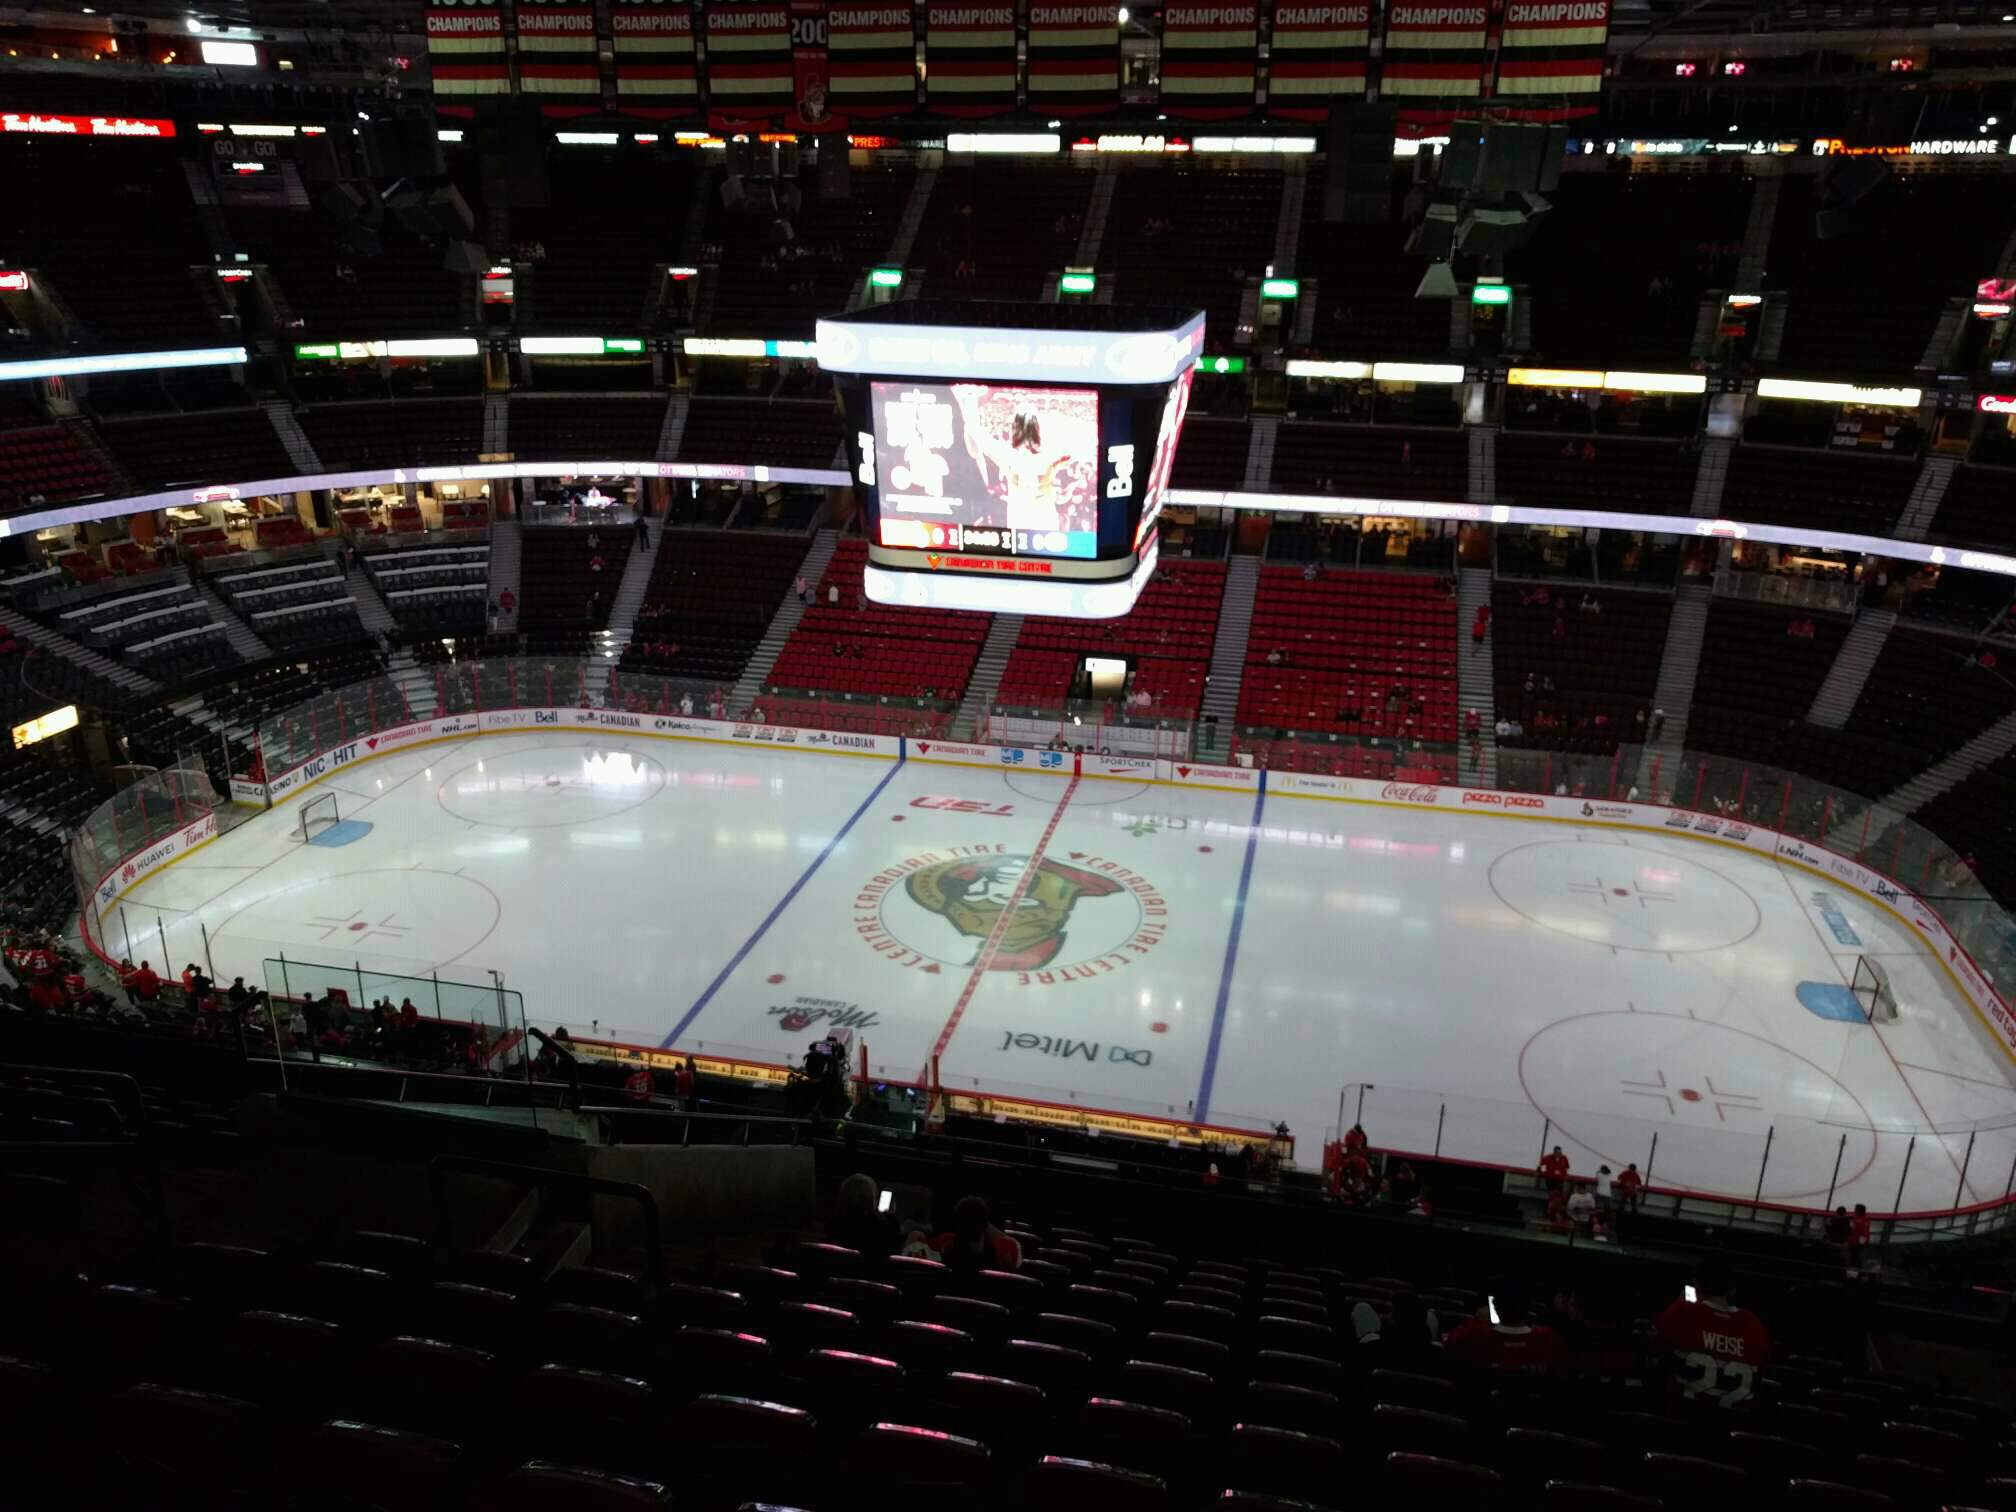 Canadian Tire Centre Section 307 Row o Seat 12